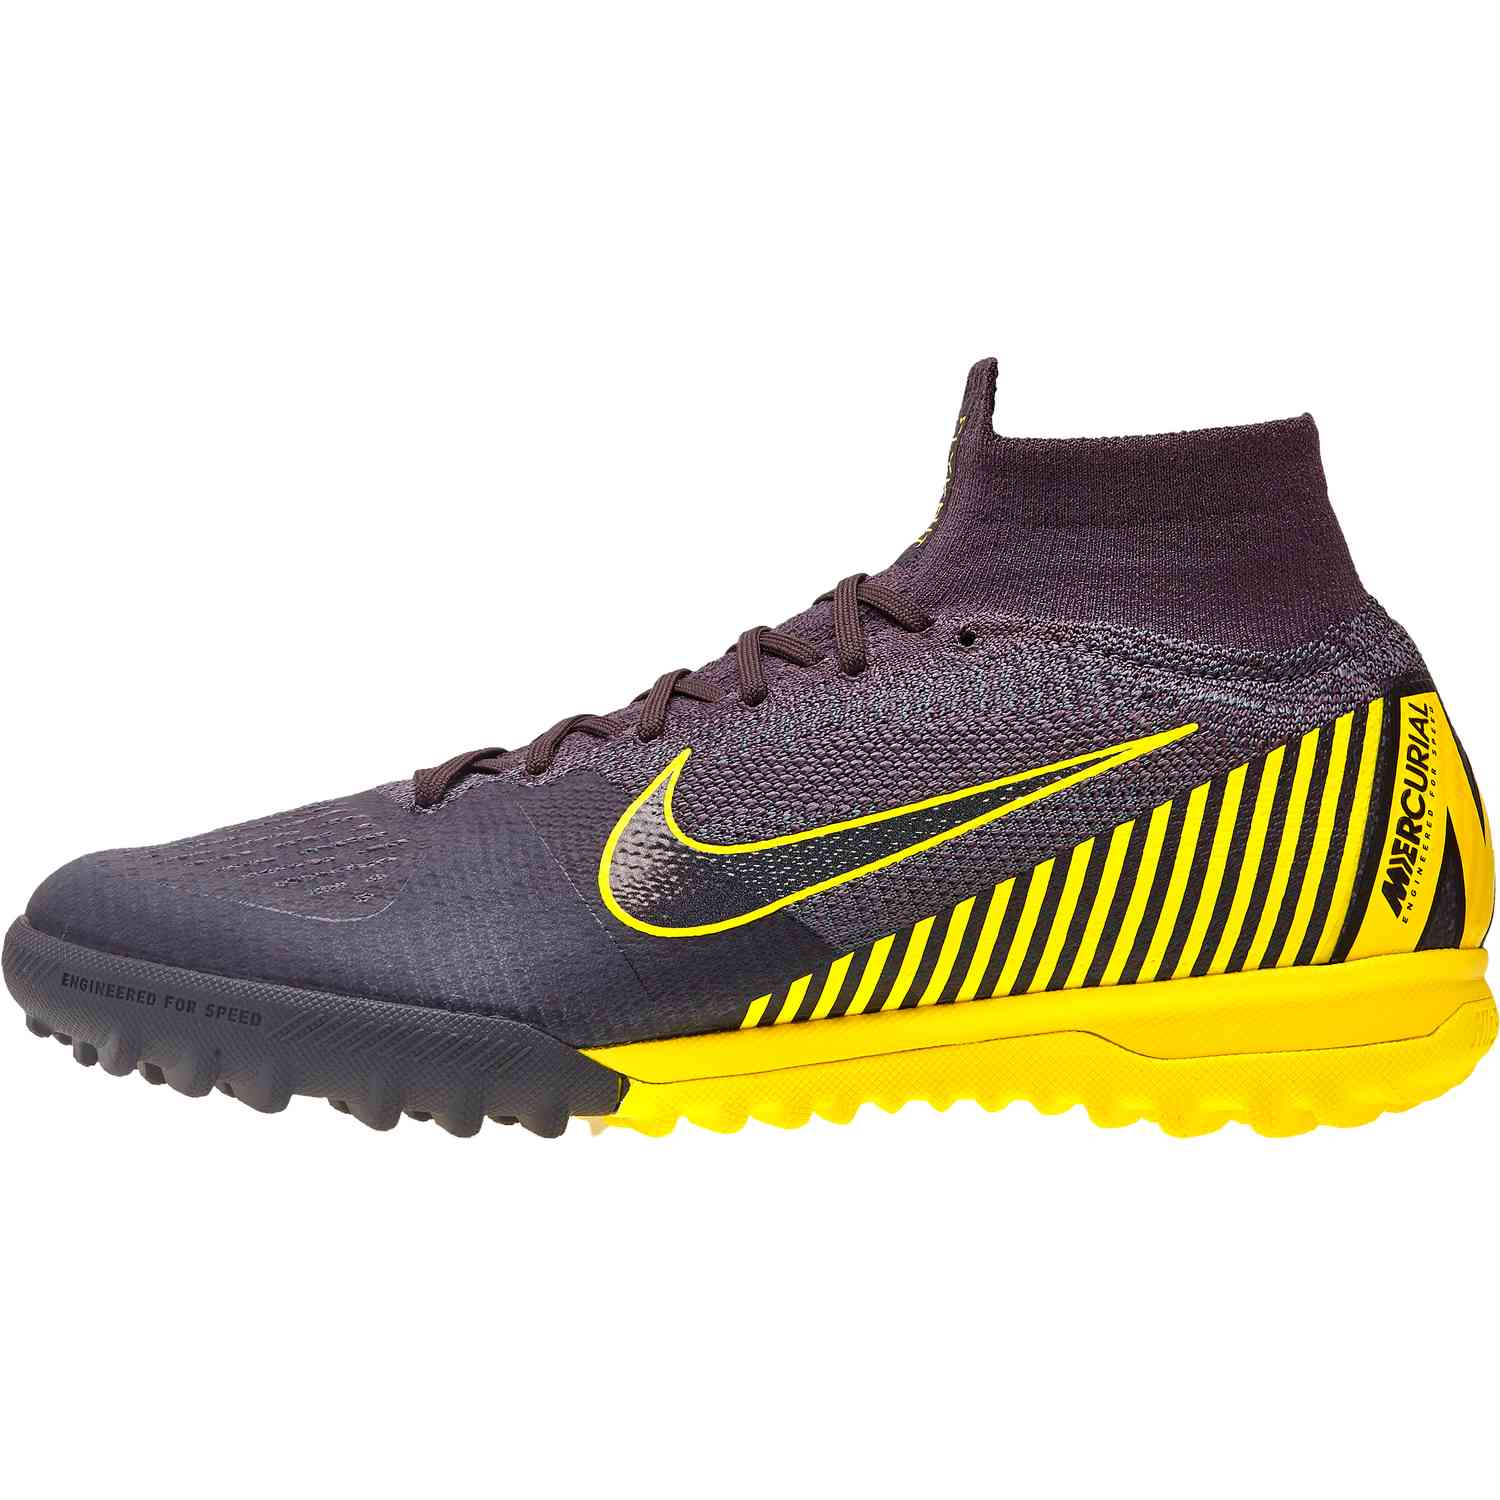 Nike Mercurial Superfly 6 Elite TF Game Over Cleatsxp